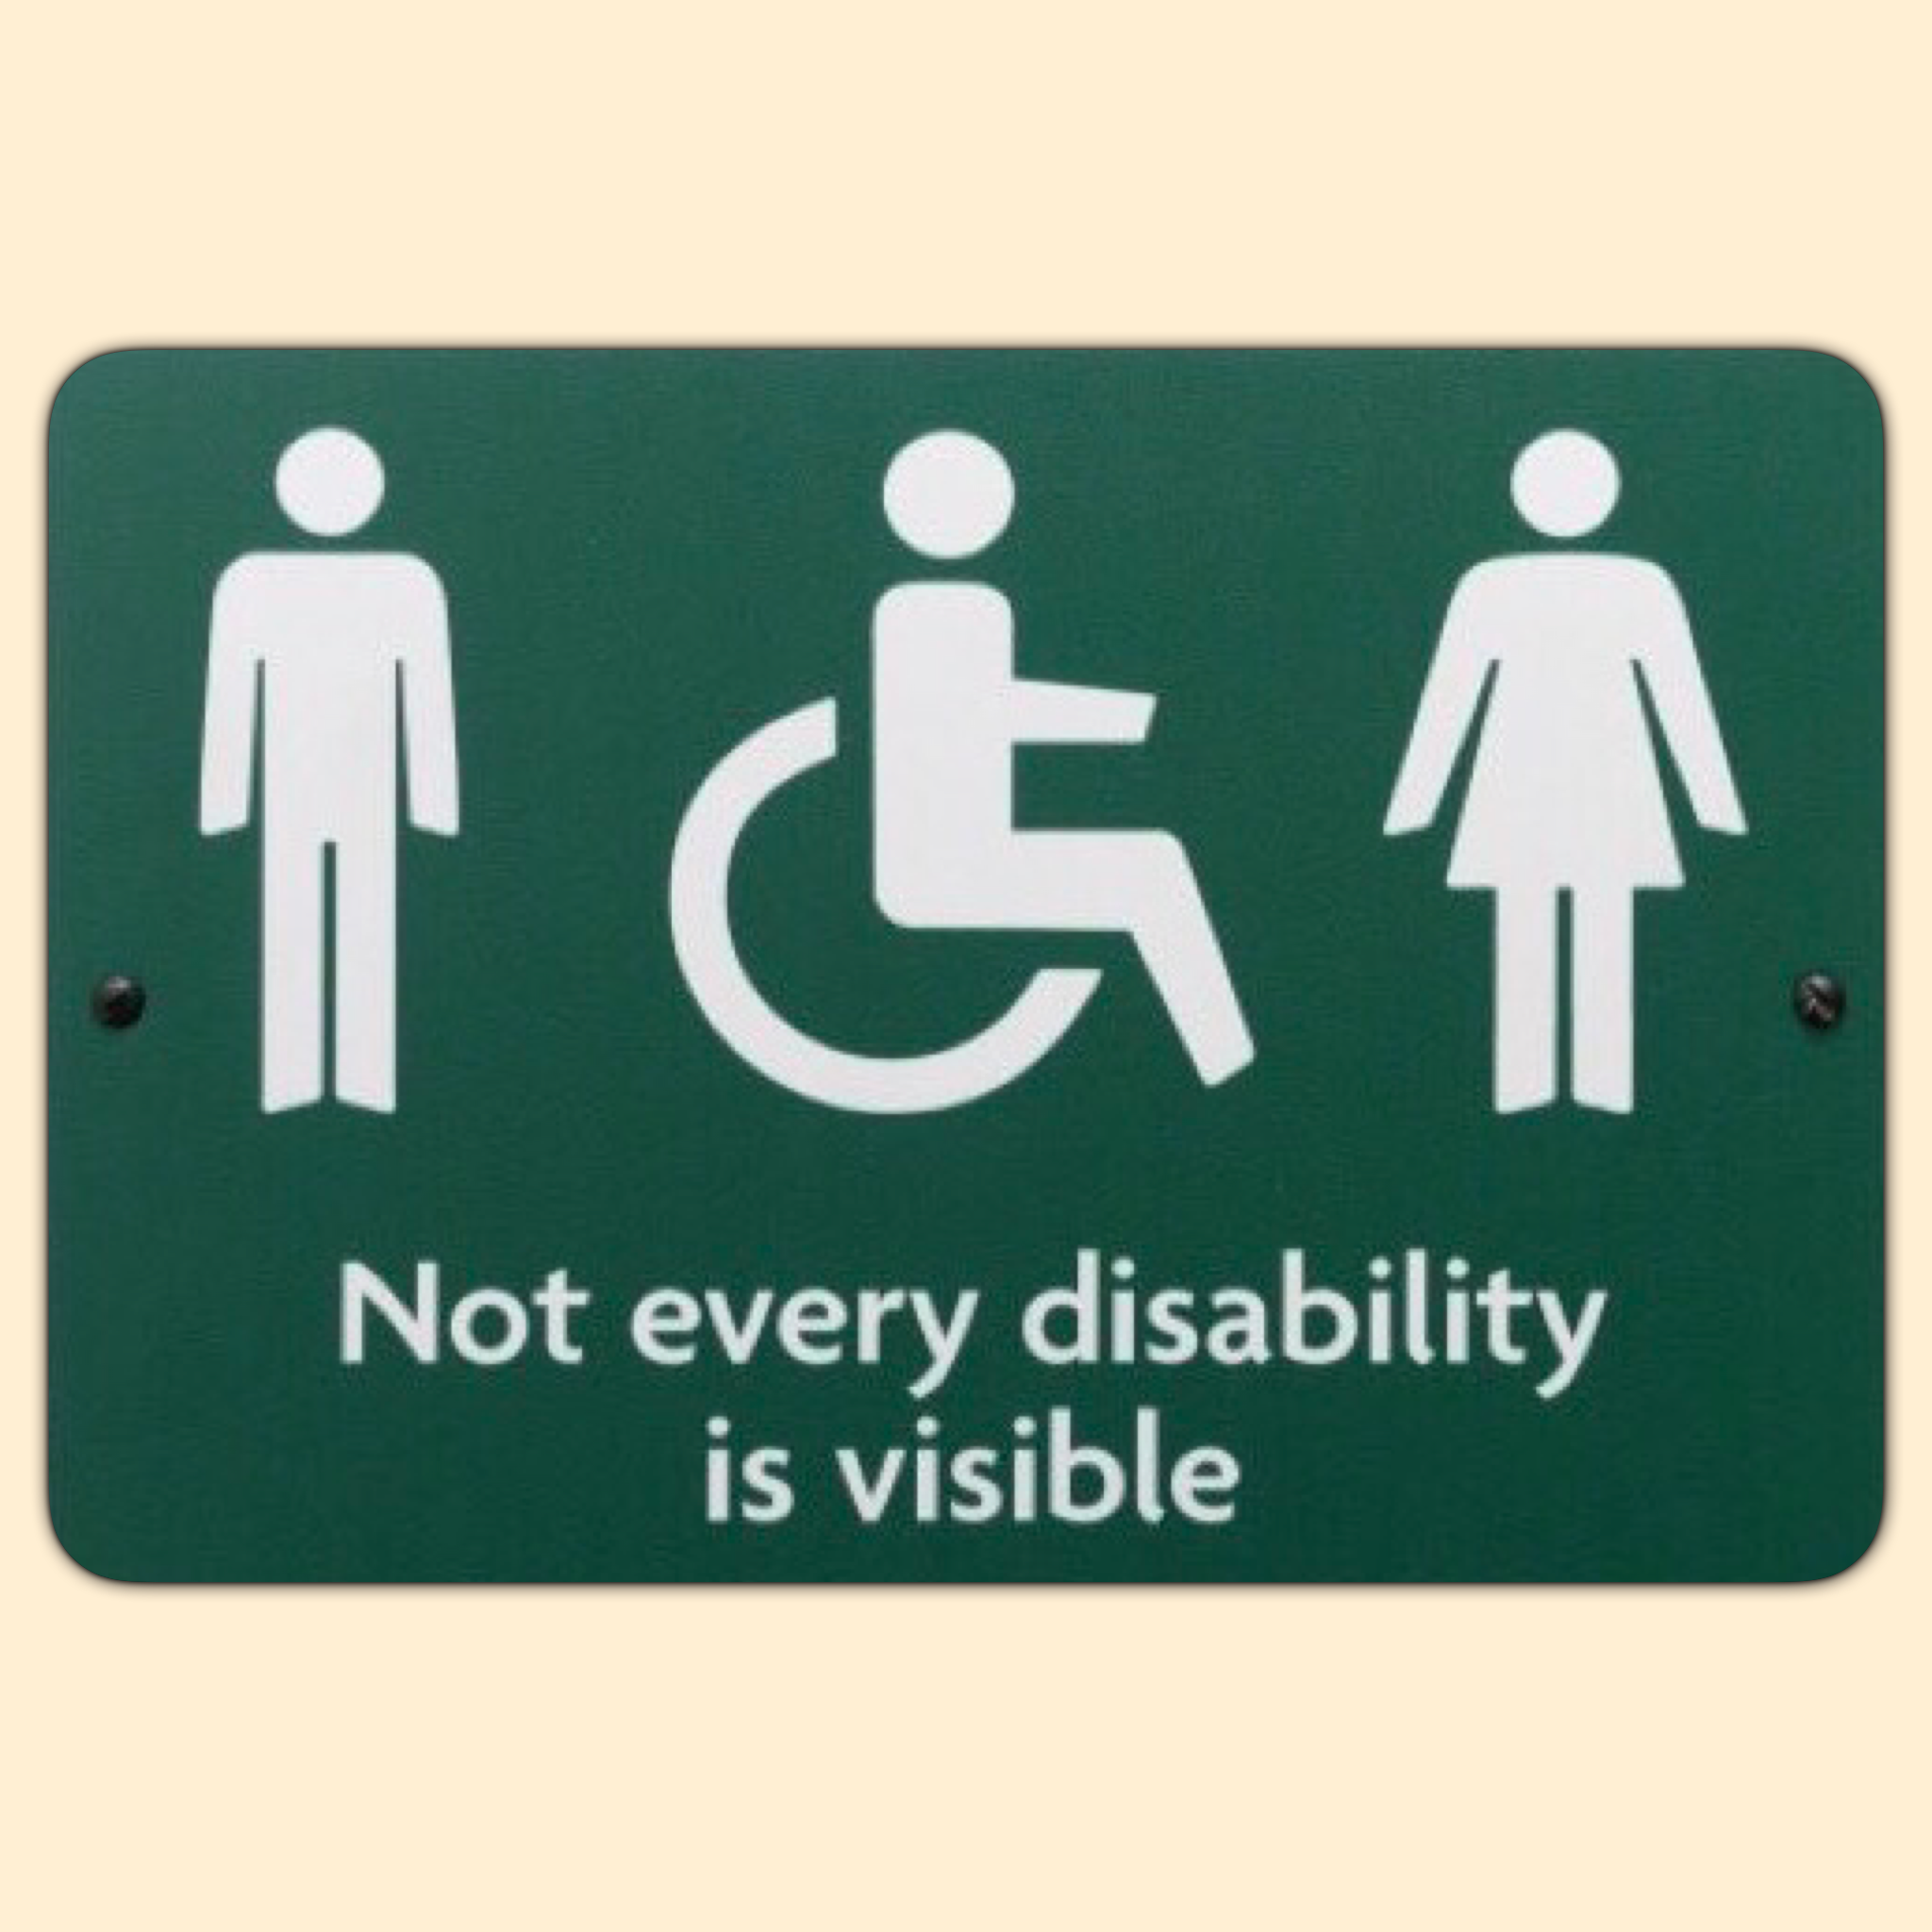 Accessible Toilet Signs What They Mean The World Of Accessible